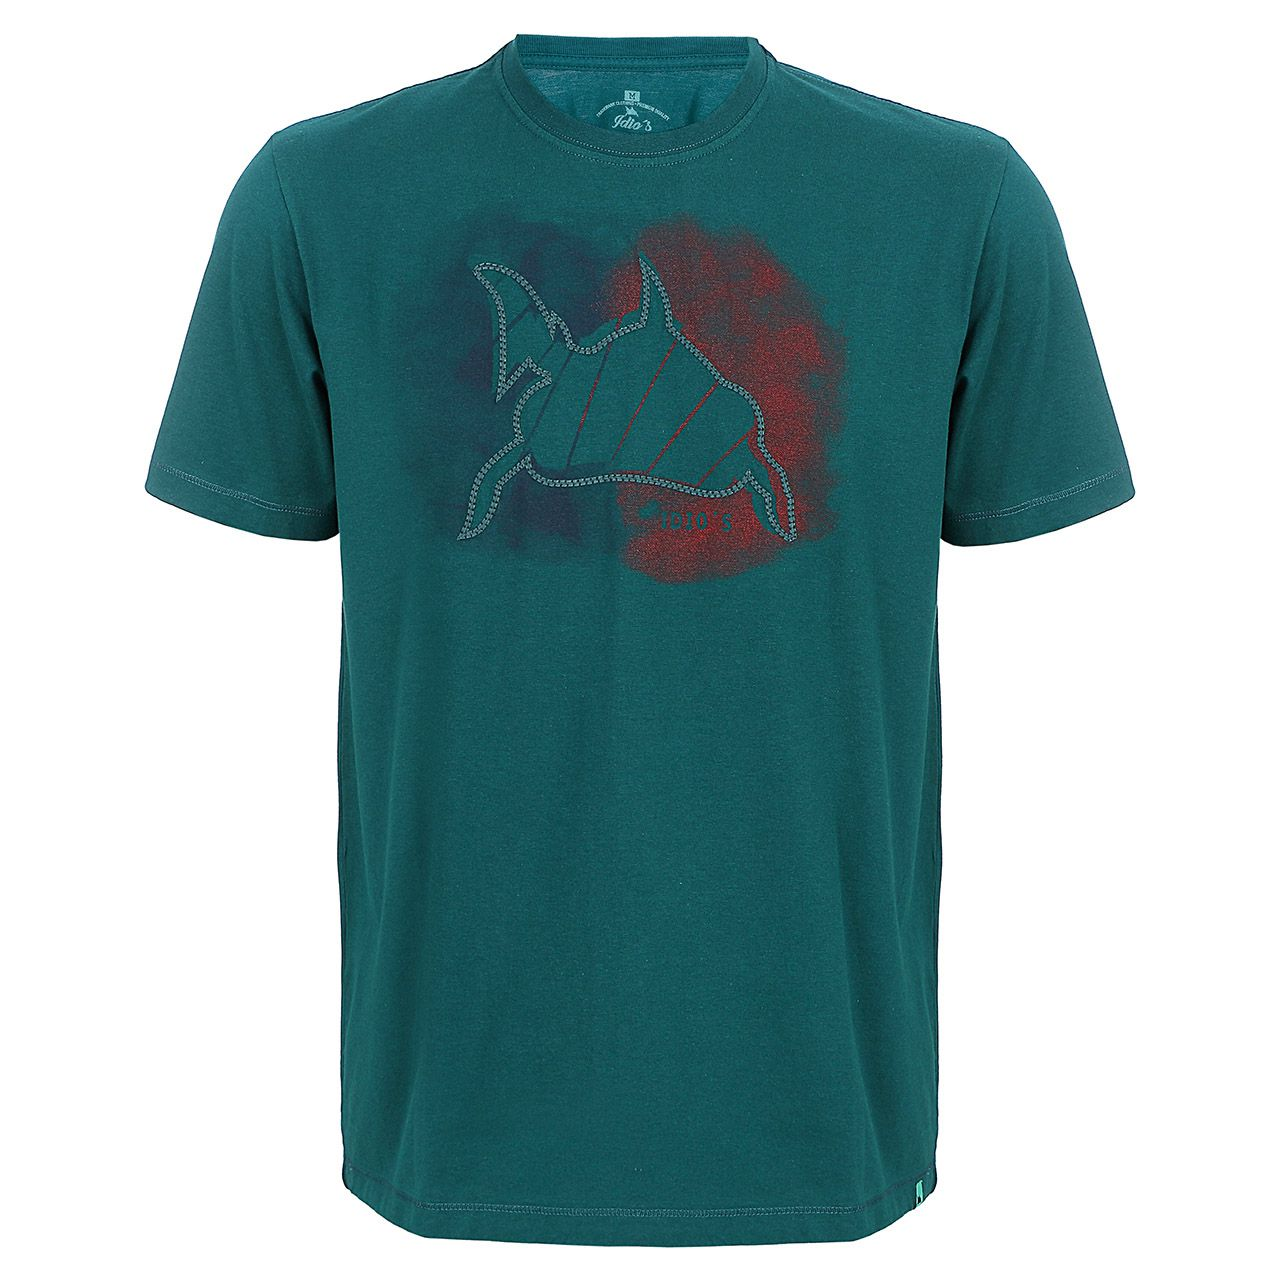 CAMISETA M/C RHODES RANCH